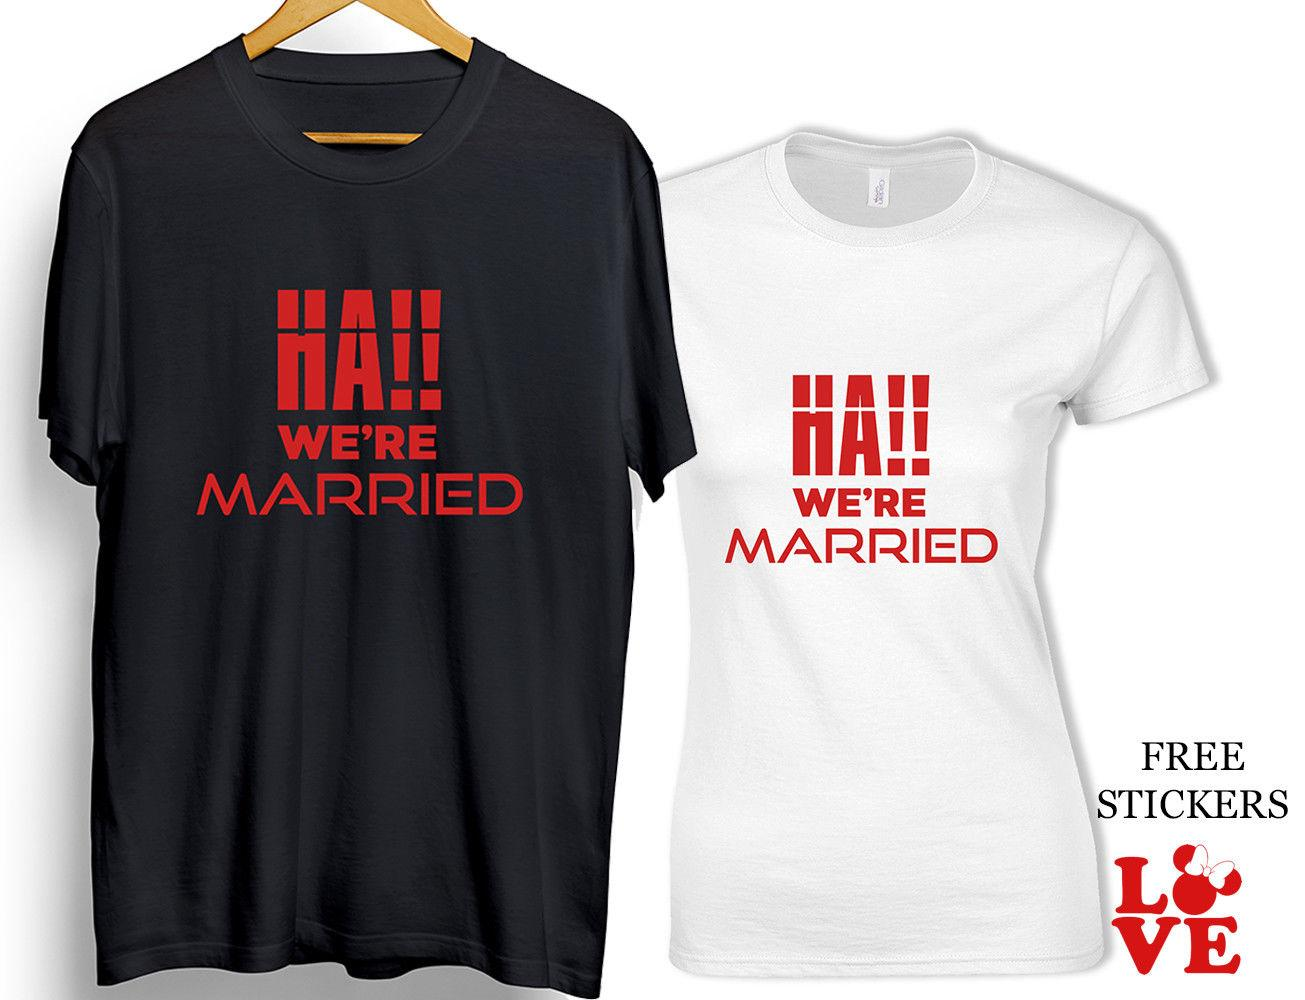 106055fed HA We're Married T-shirt Funny New Couples Husband Wife Honey moon Love Gift  Top Funny free shipping Unisex Casual tee gift